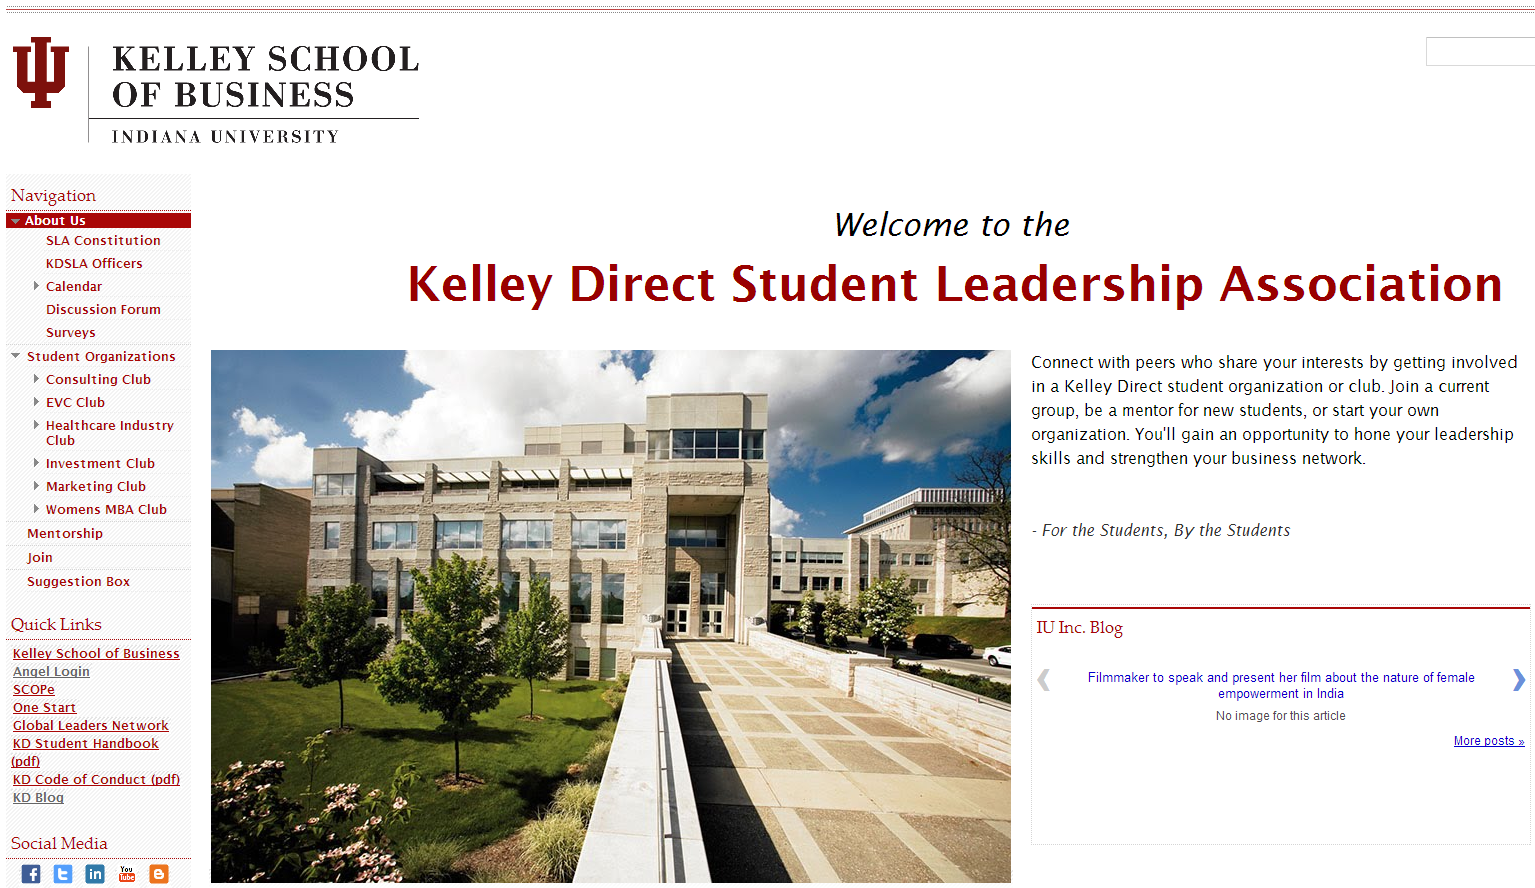 Kelley Direct Student Leadership Association Launches New Website